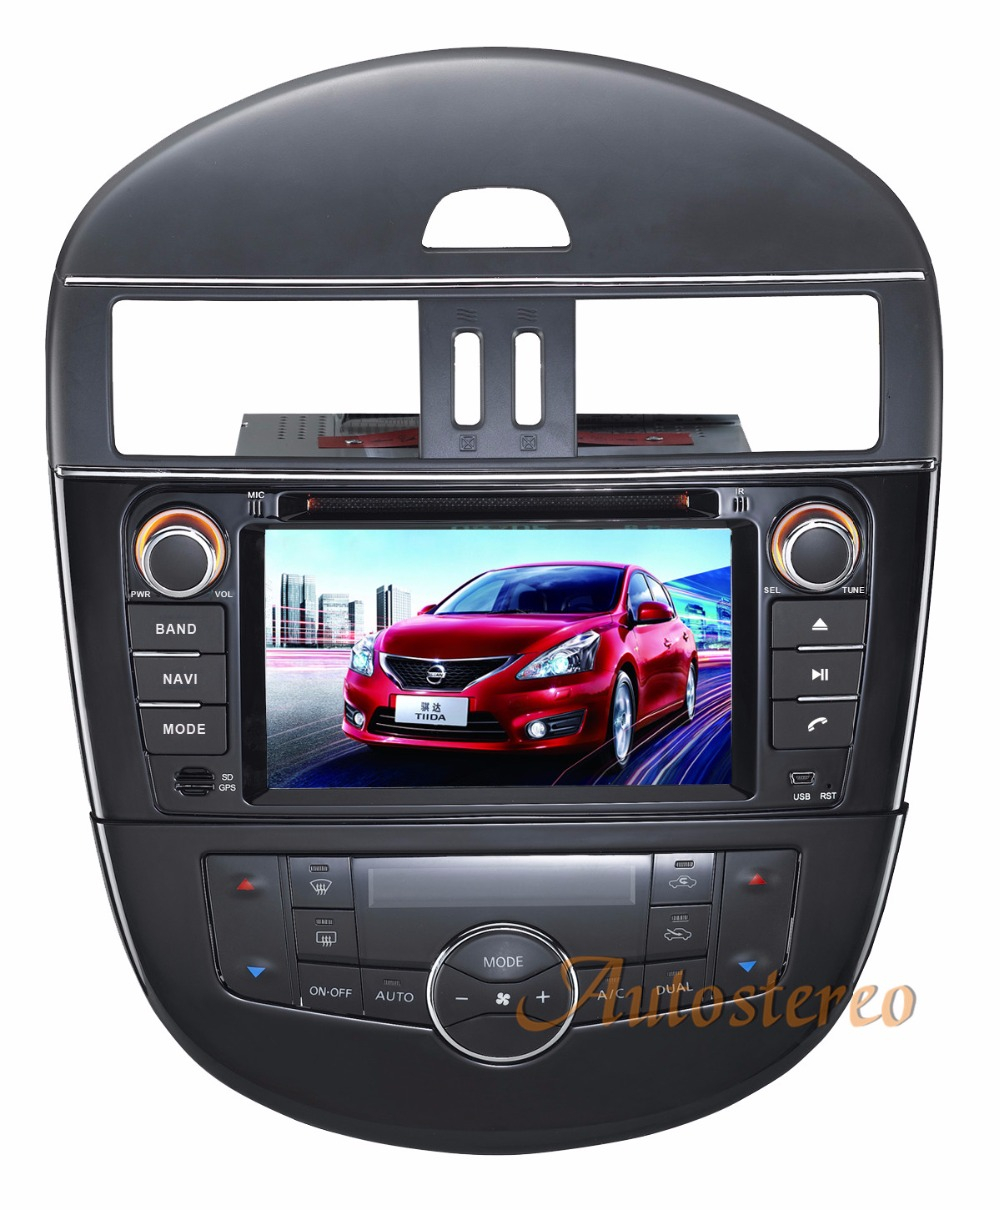 The Newest Android 7.1 Car GPS Navigation DVD Player For NISSAN Nissan Tiida Versa 2011-20